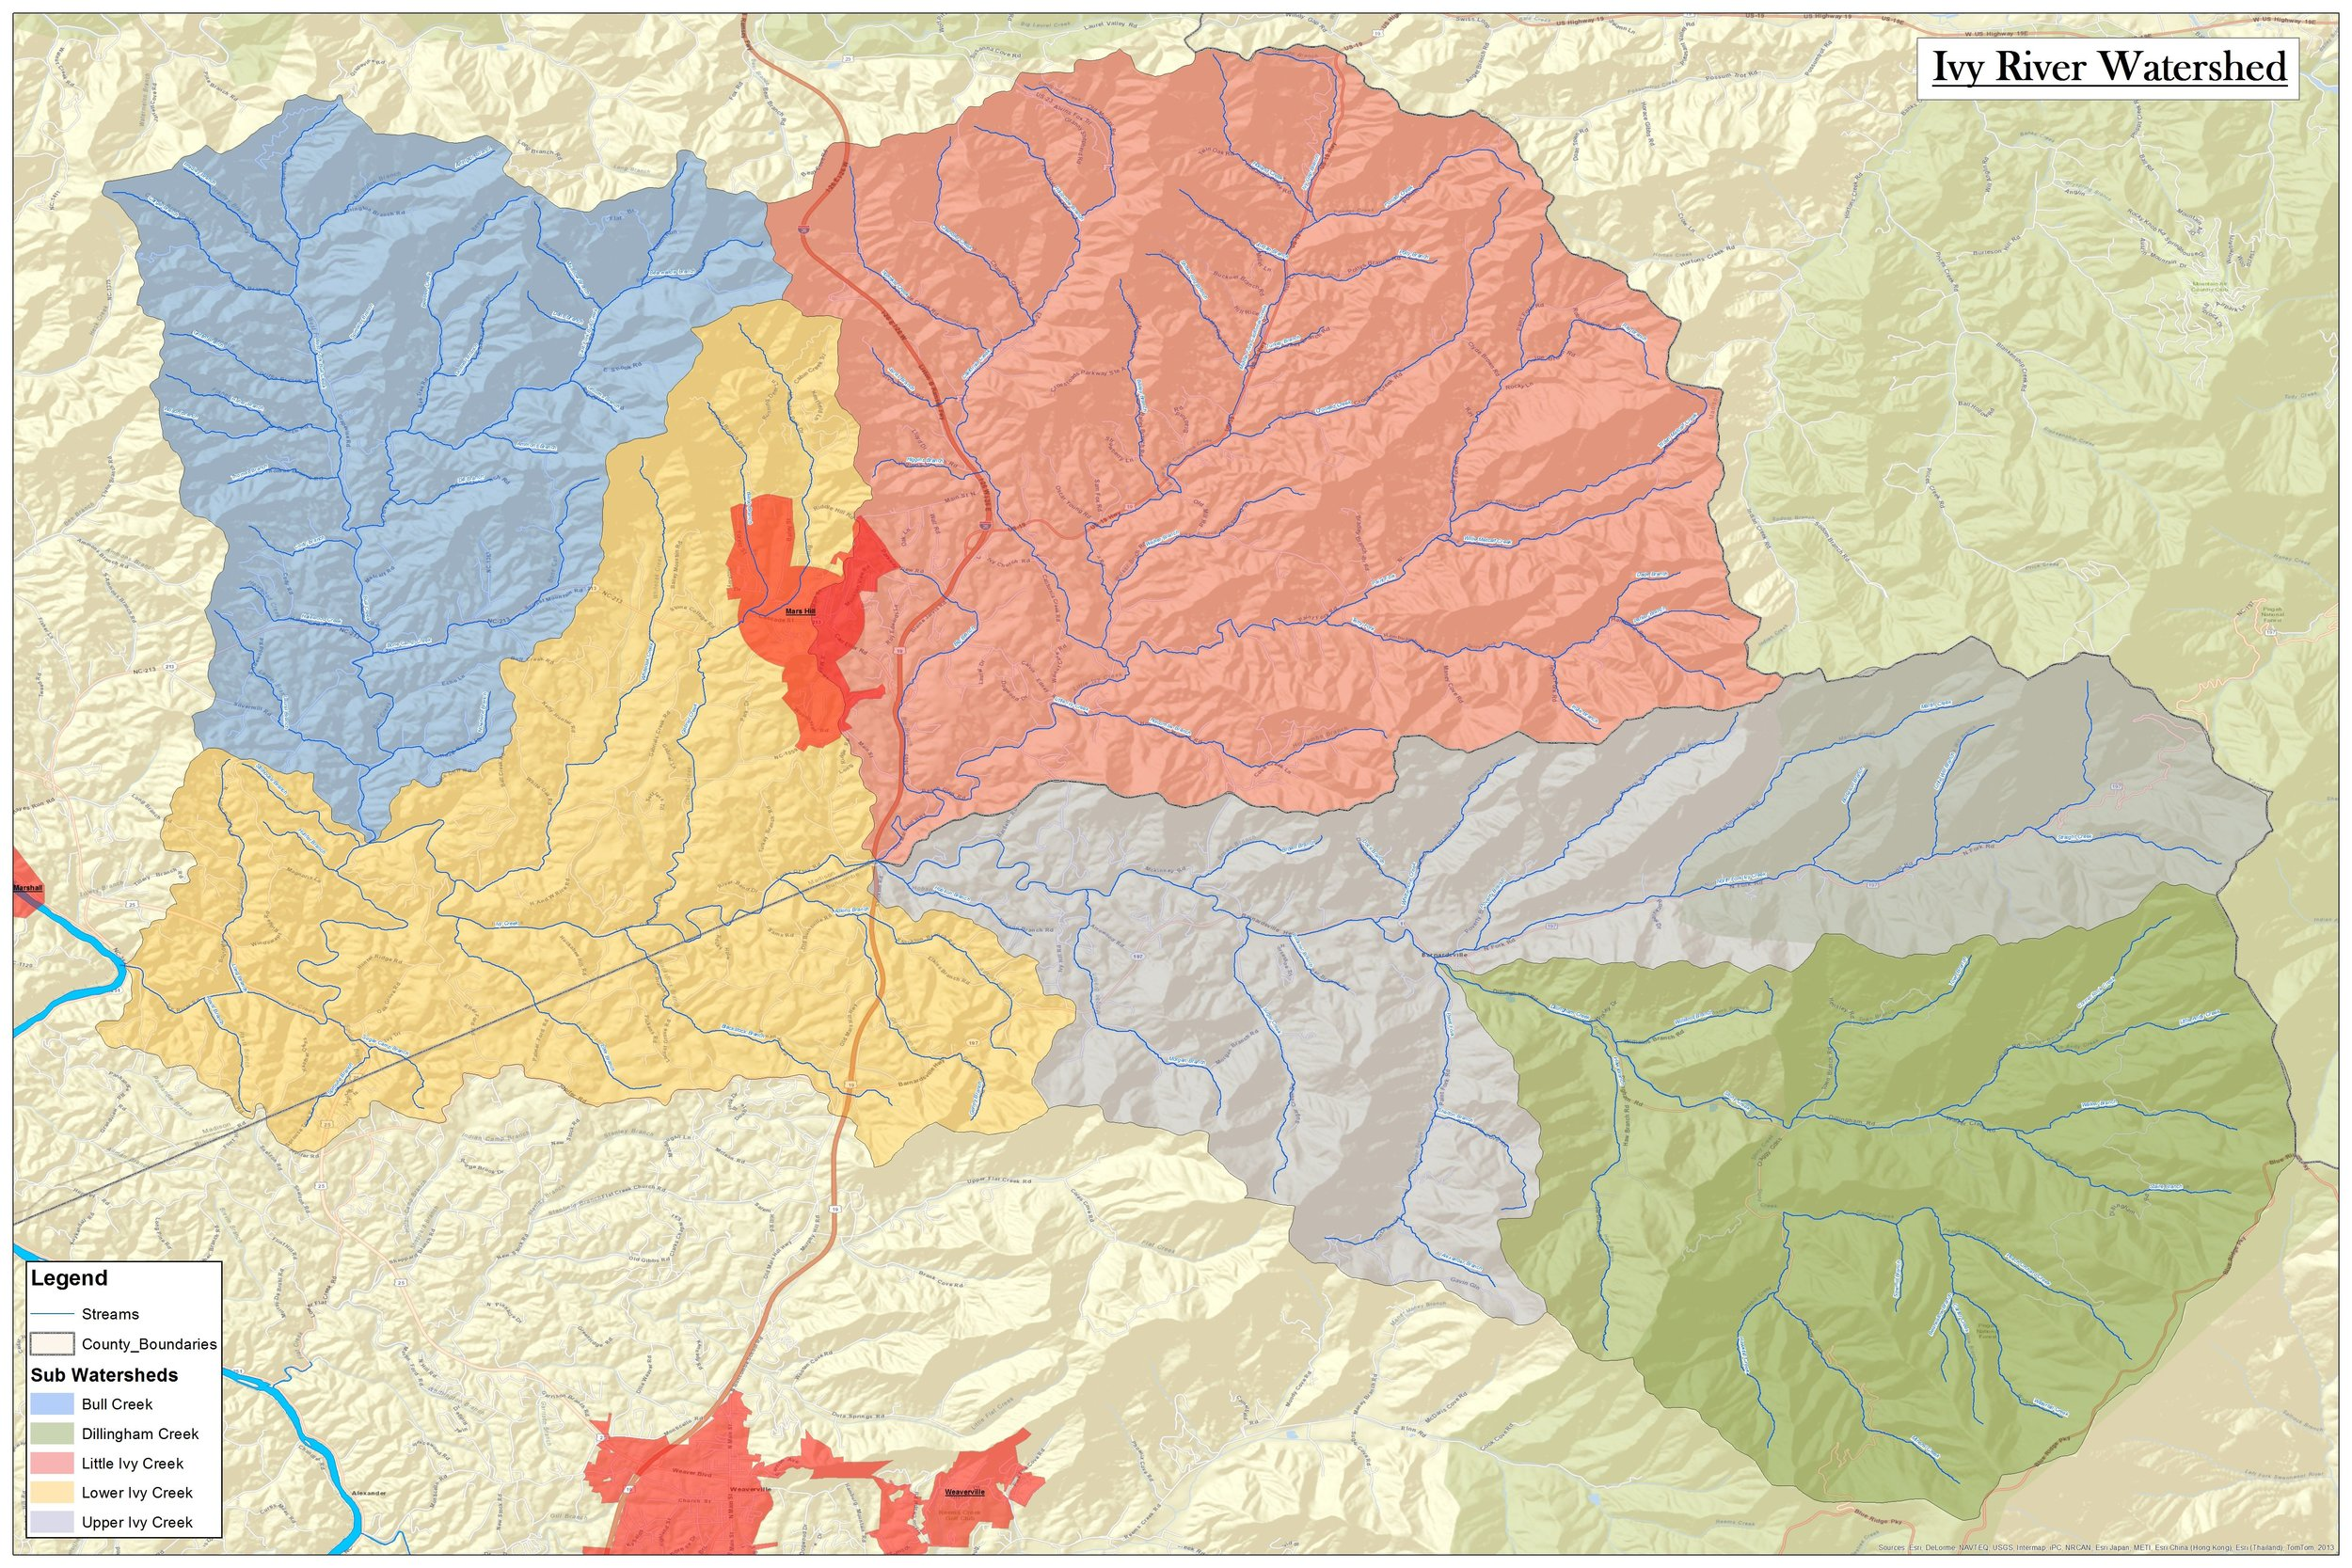 Map of the Ivy River Watershed - click to enlarge